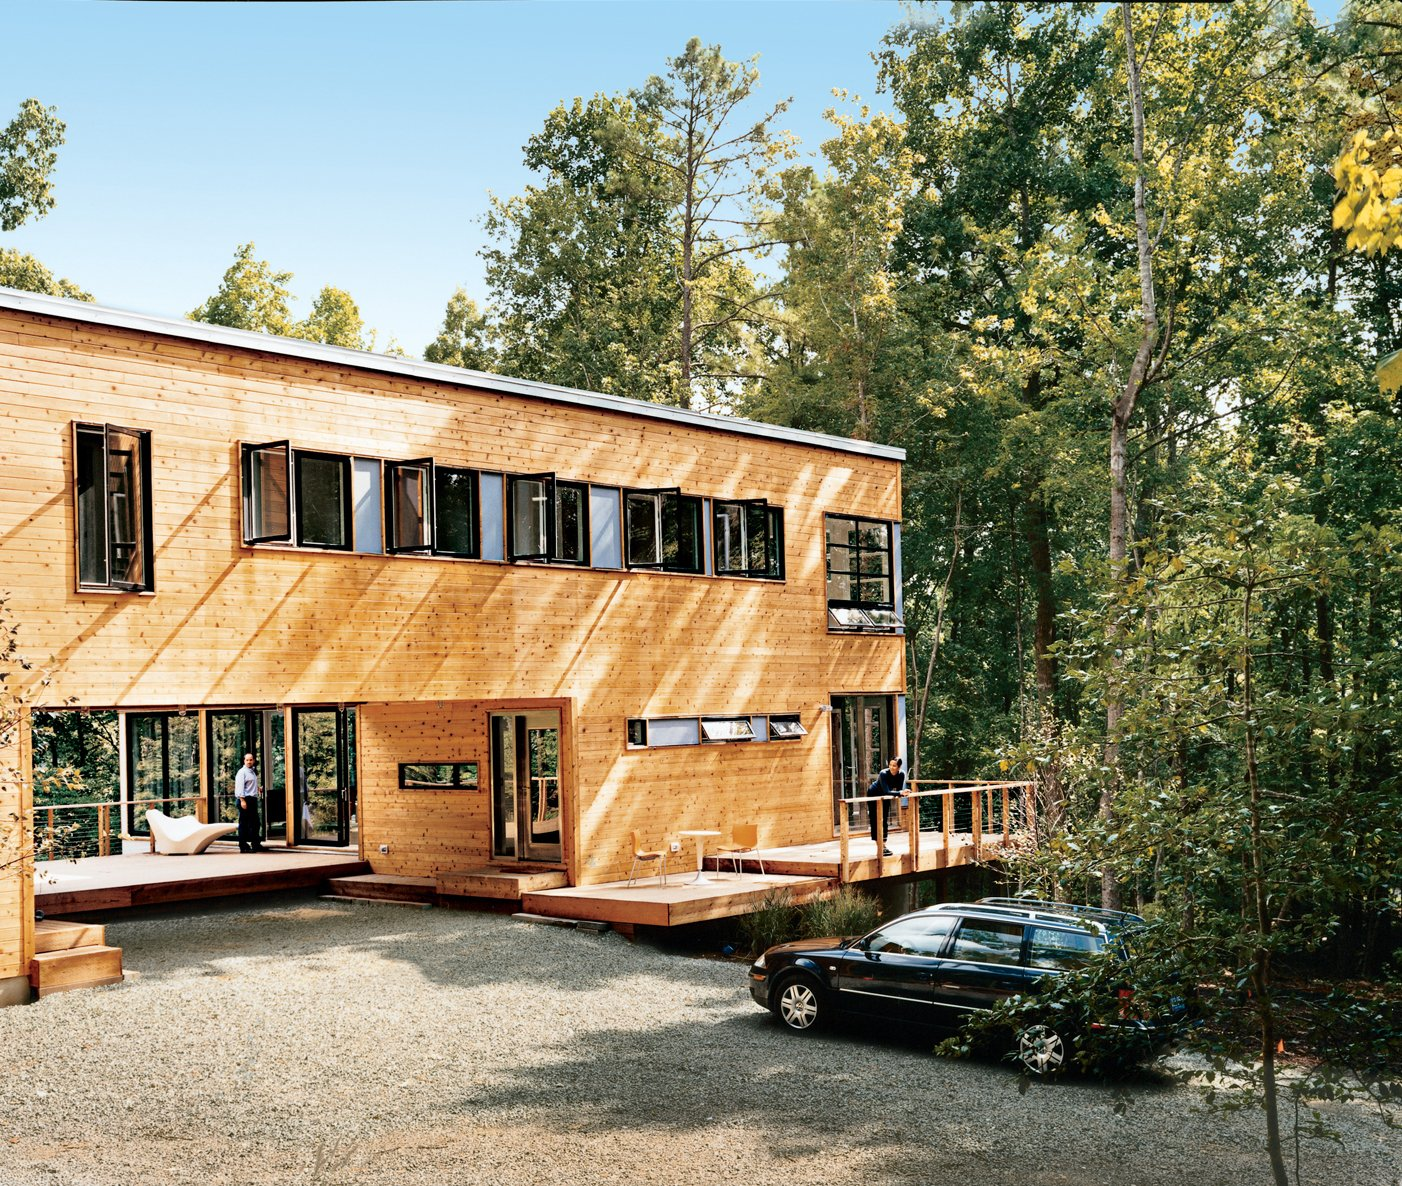 Wieler and Tung enjoy two of the home's several decks.The home is clad in red cedar siding and features a multitude of view-enhancing windows by Loewen. The decking is composite wood by Trex.  Photo 1 of 12 in Prefab, Proven